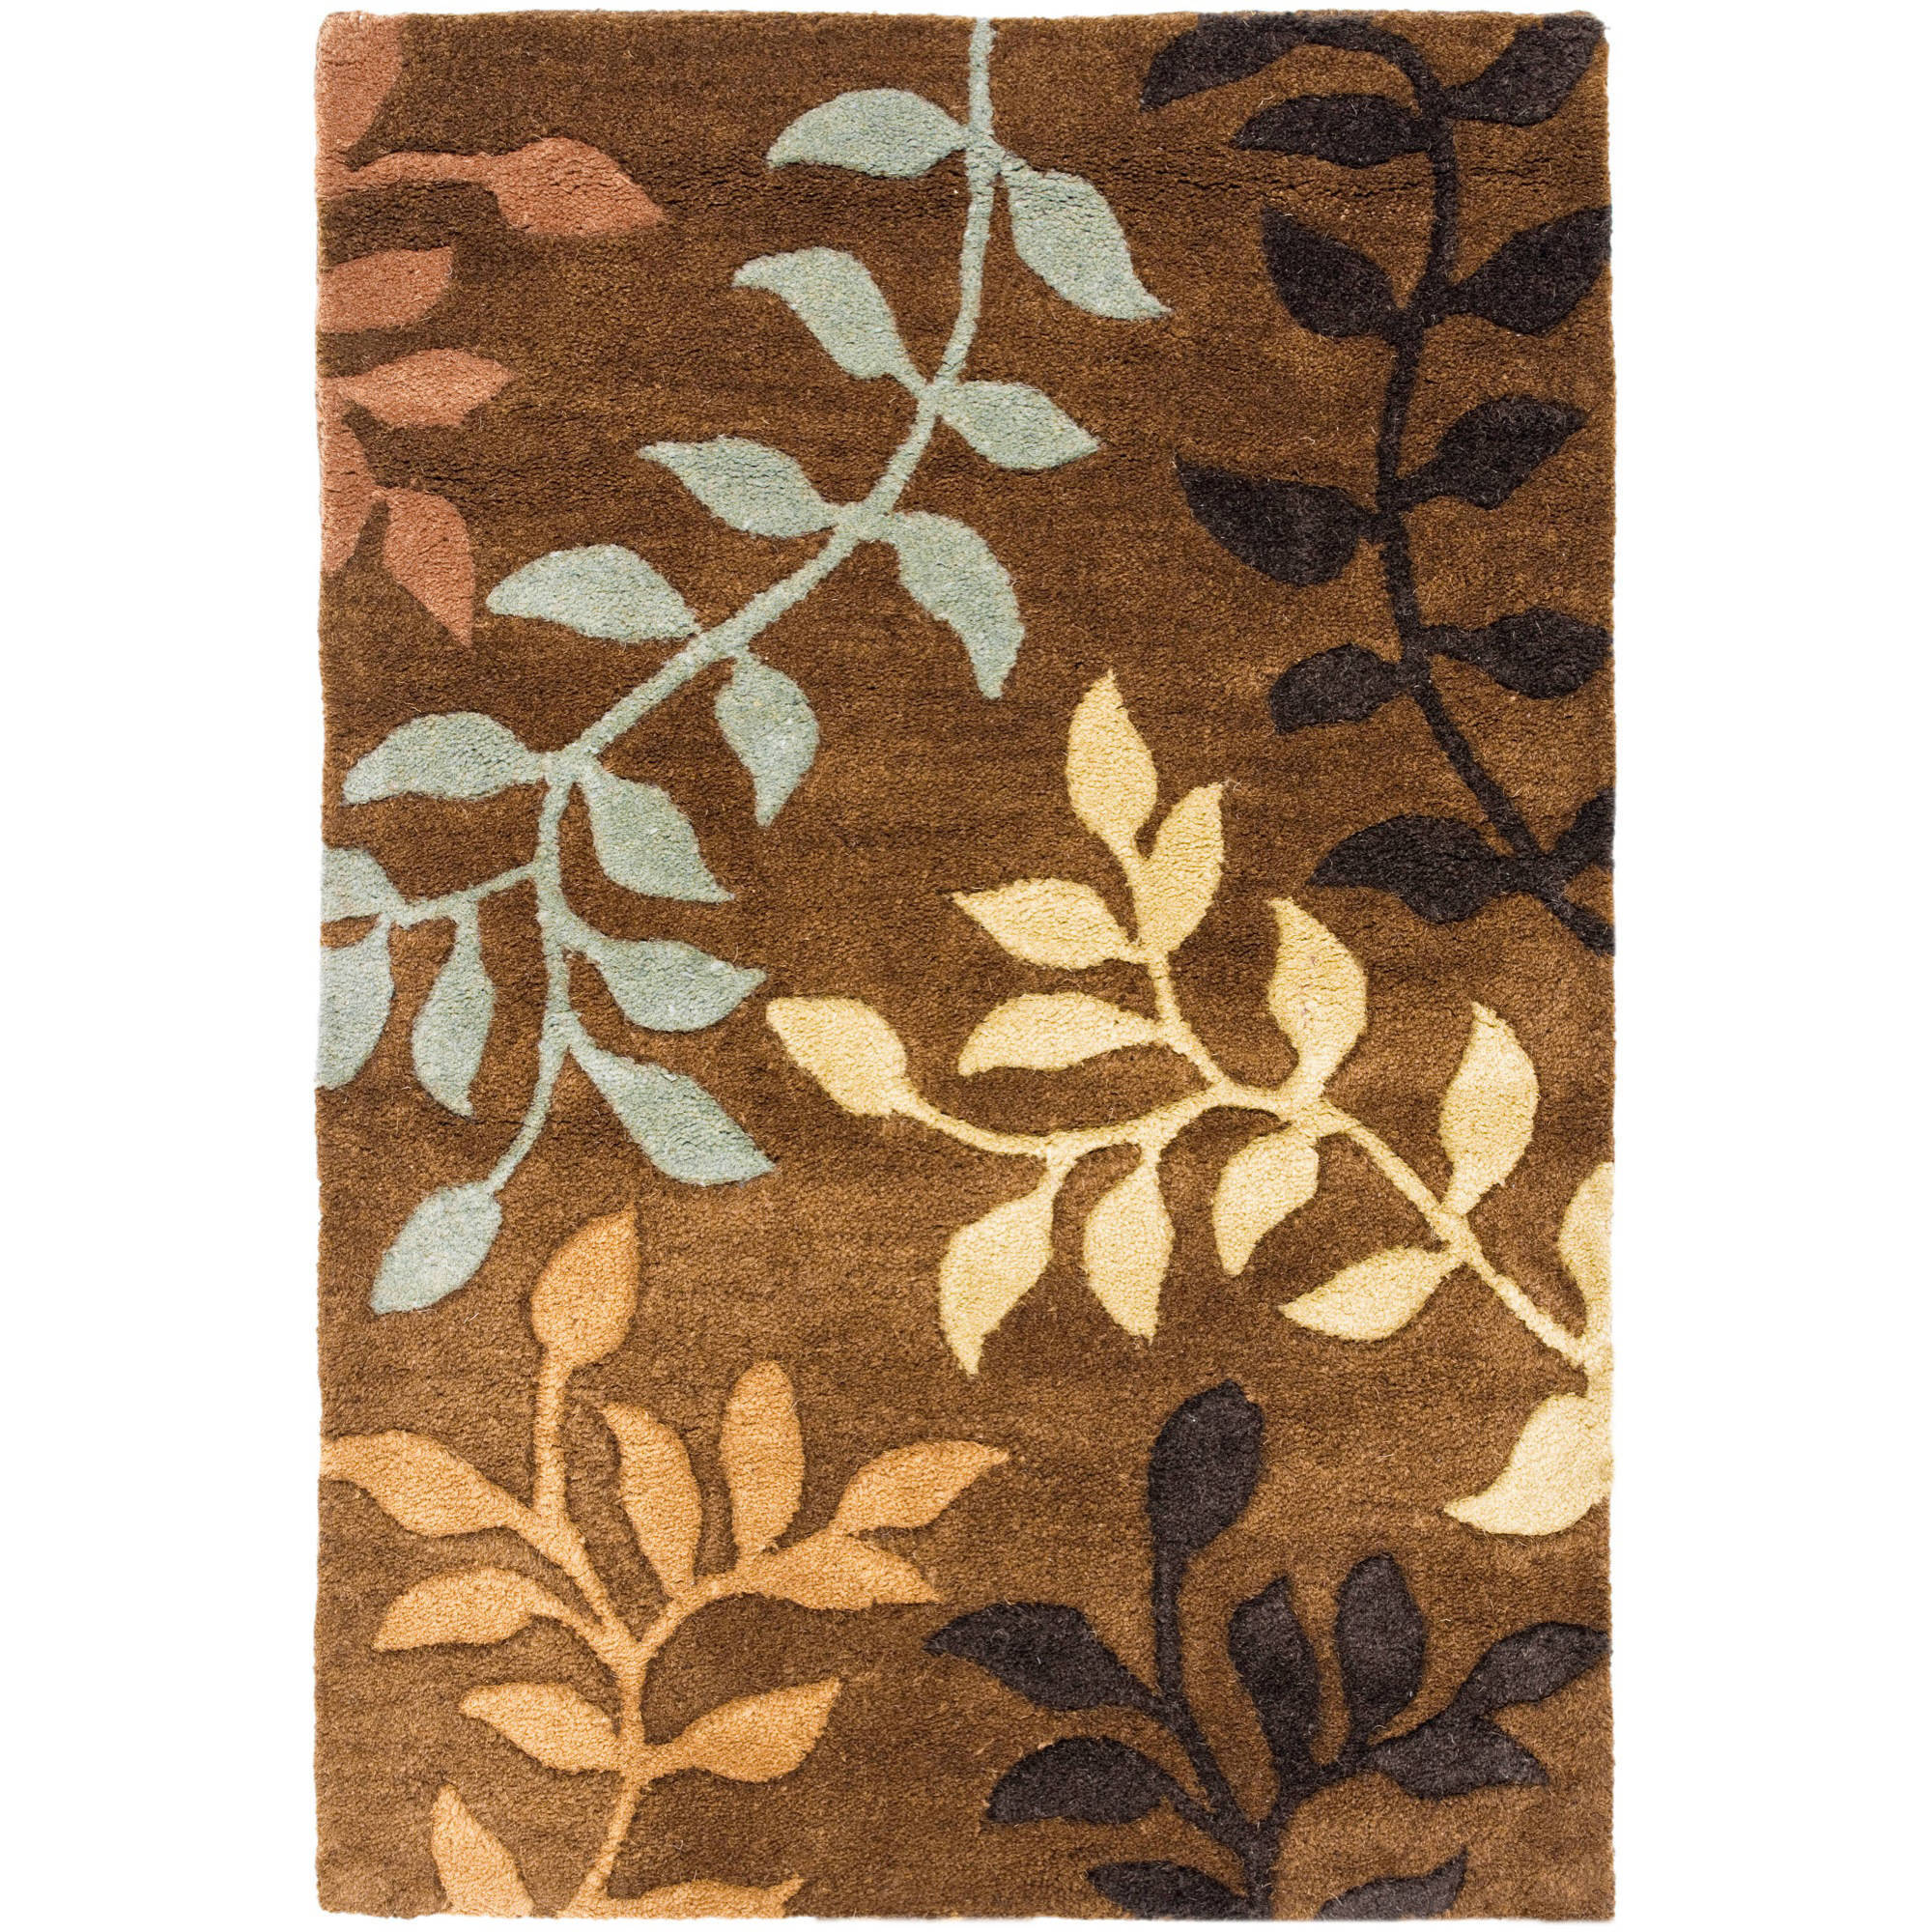 Safavieh Soho Melba Wool Rug, Brown/Multi-Color